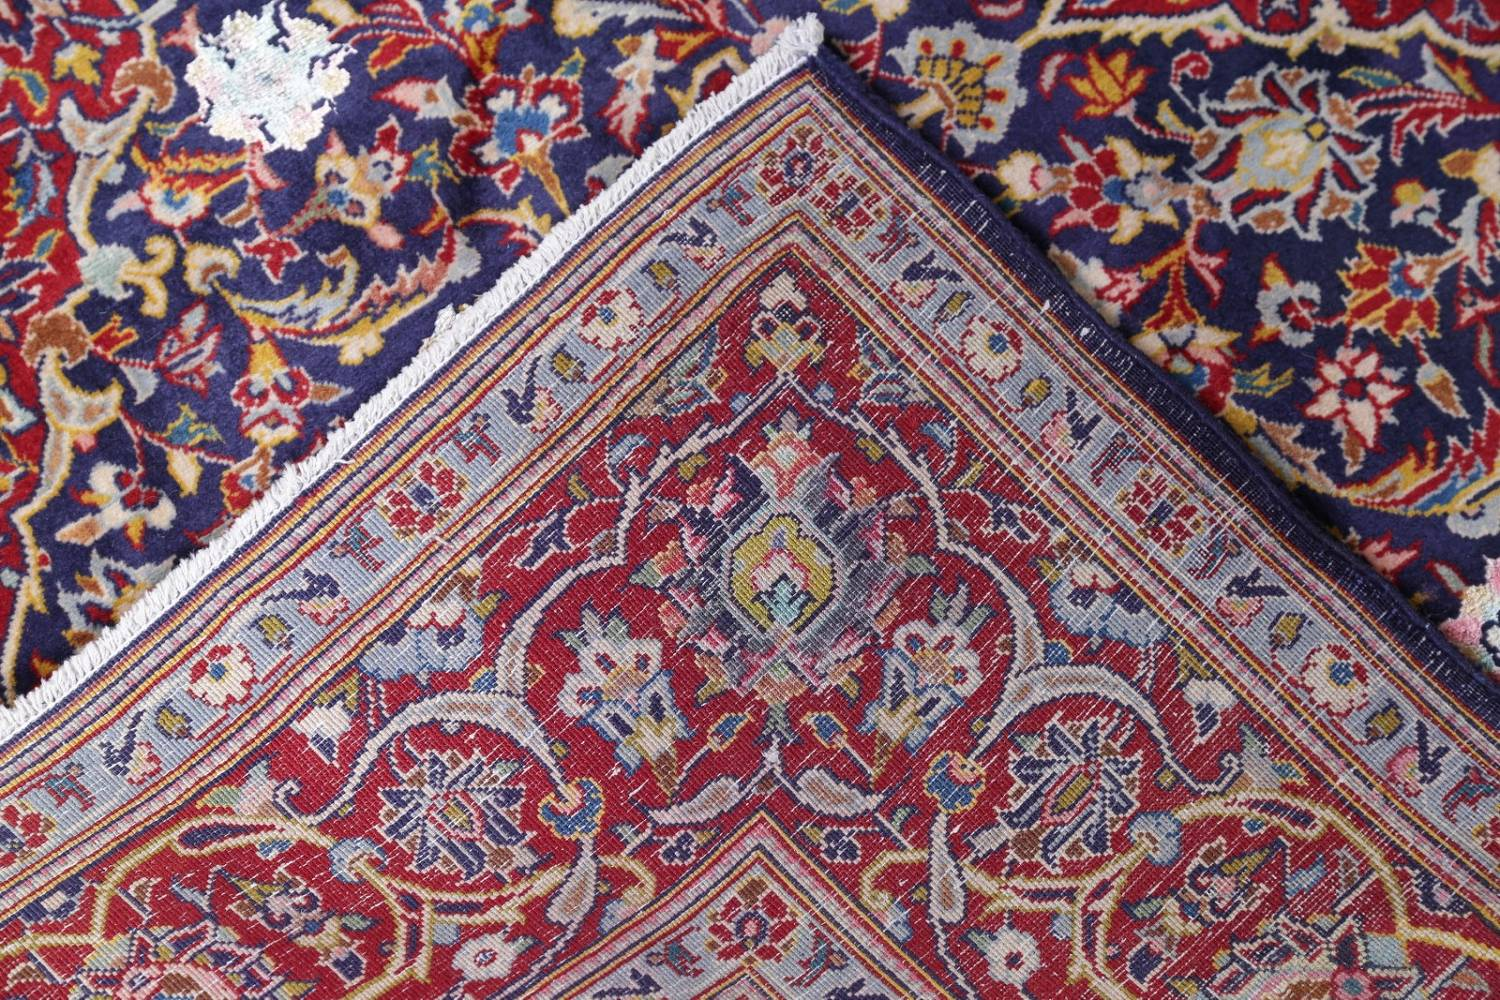 Vegetable Dye Floral Blue Kashan Persian Hand-Knotted Area Rug Wool 5x7 image 21